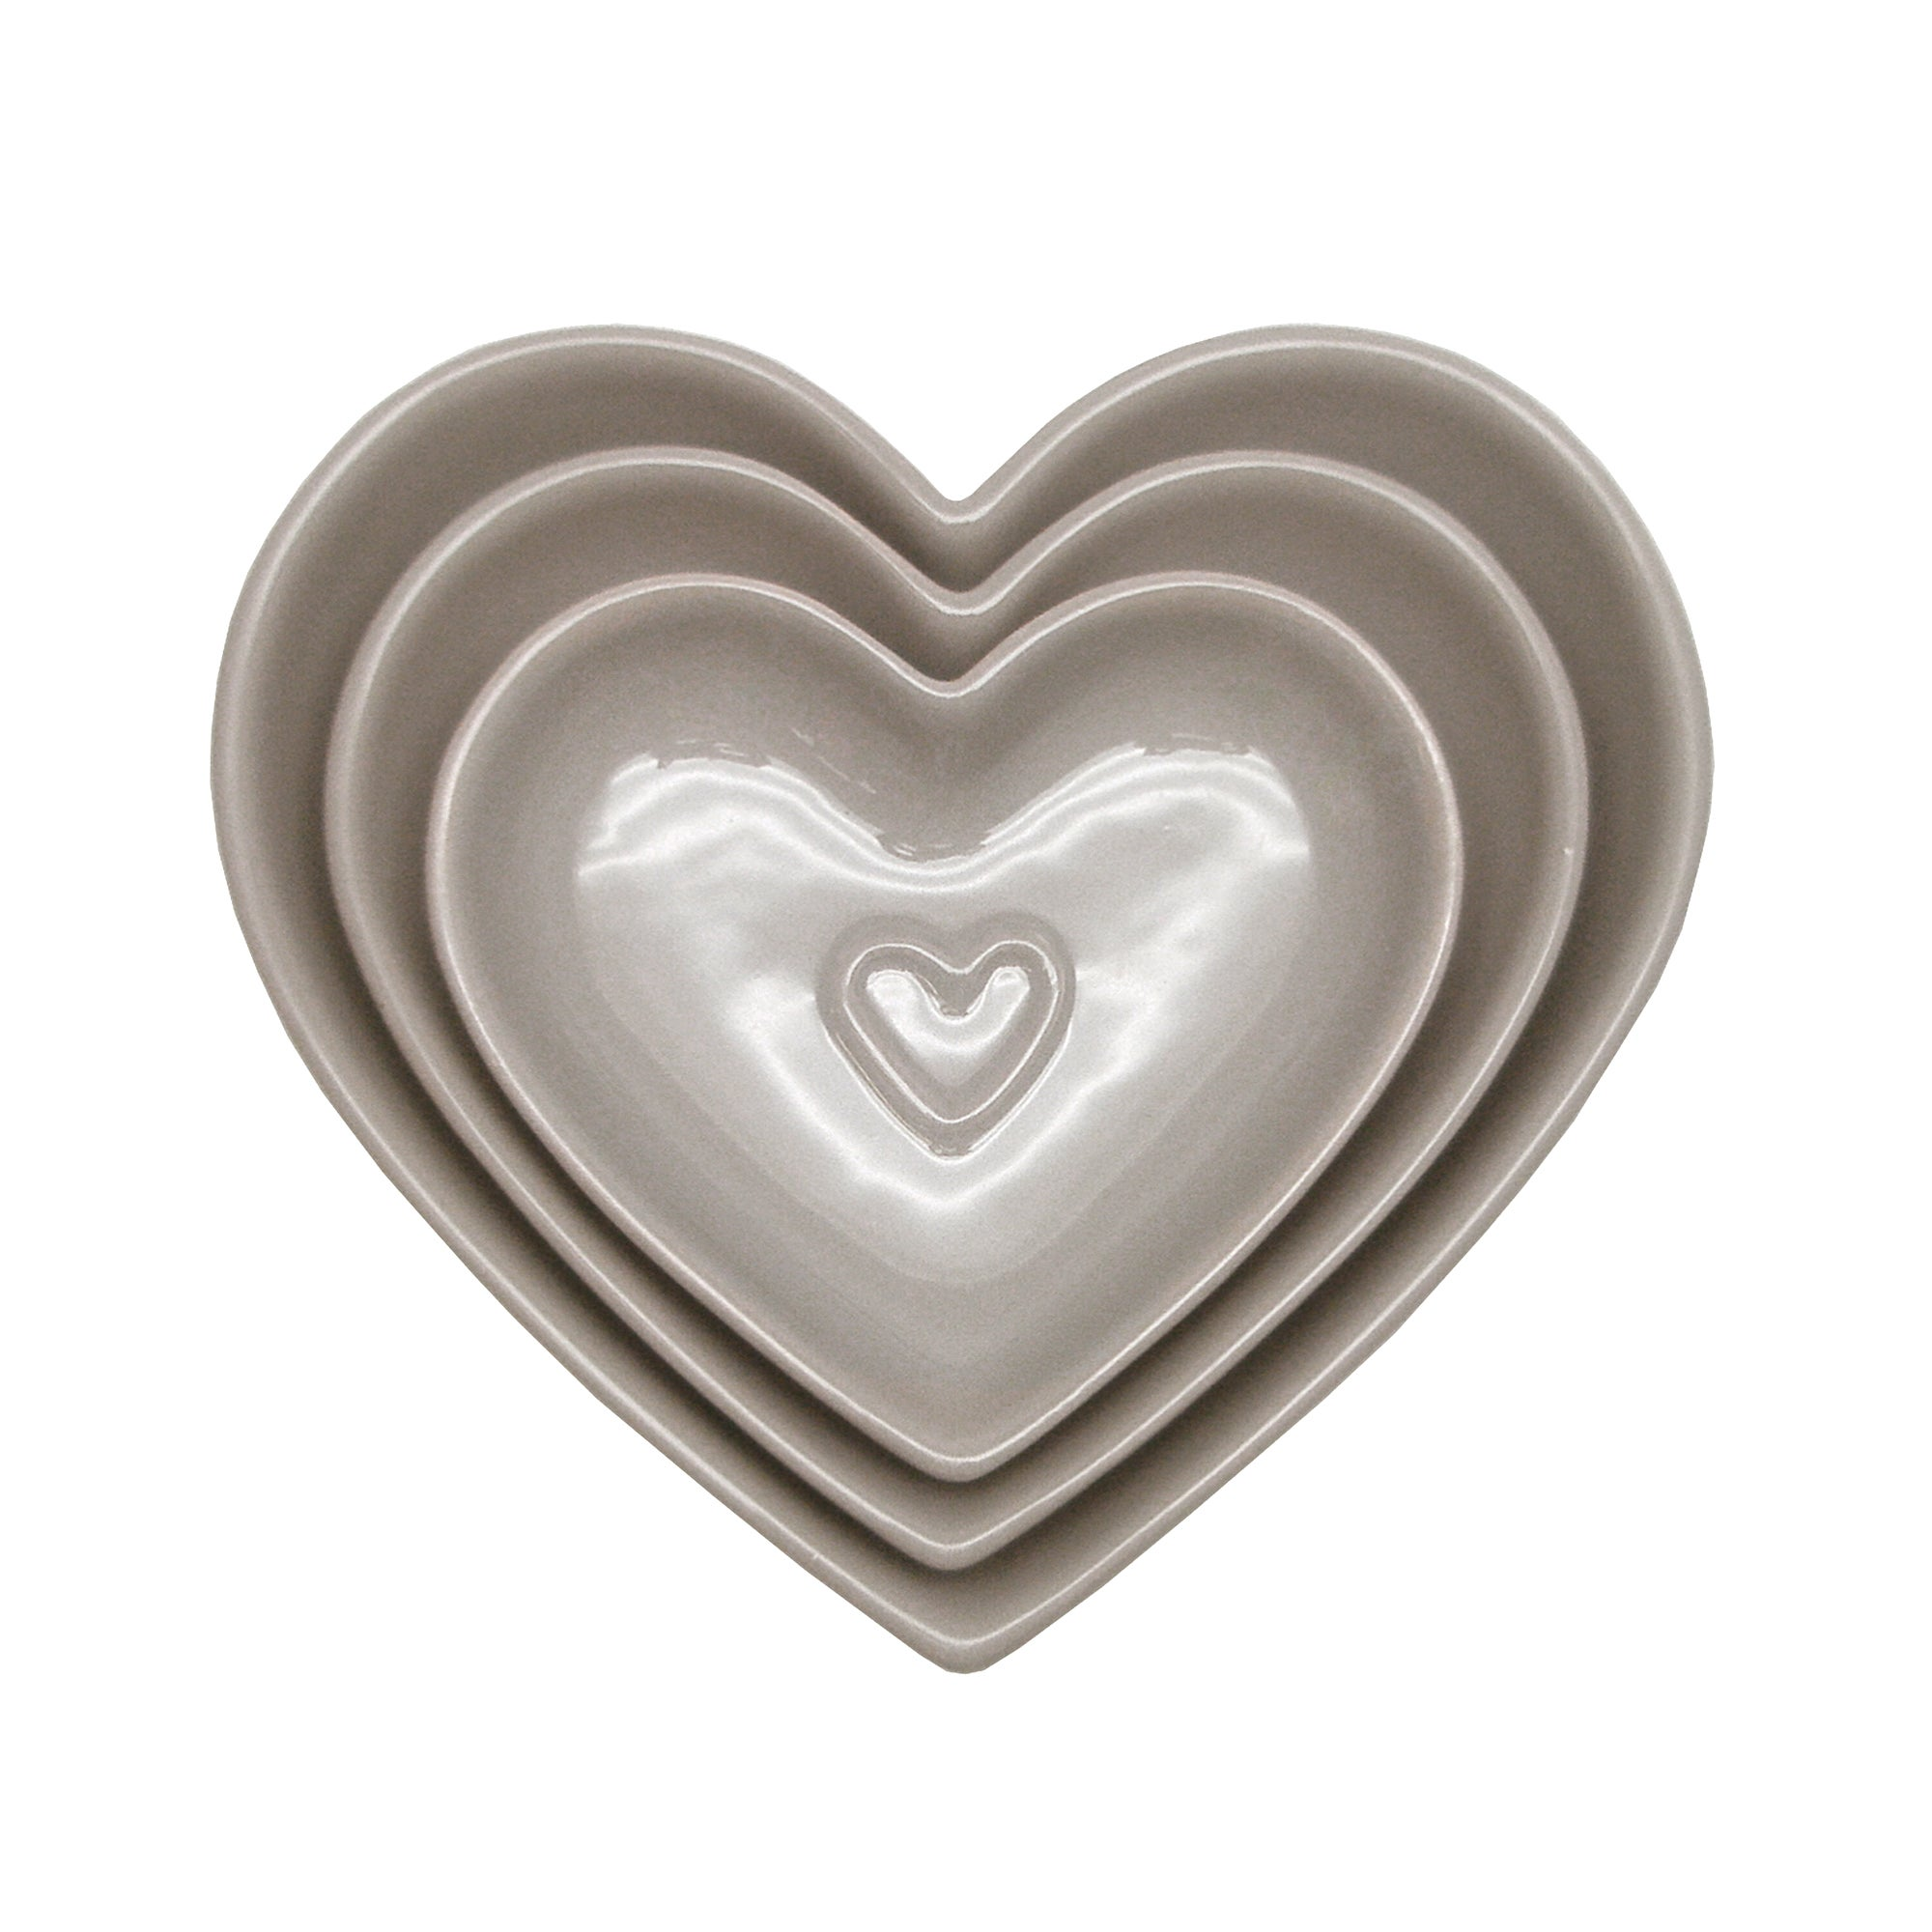 Taupe Country Heart Collection Nesting Bowls